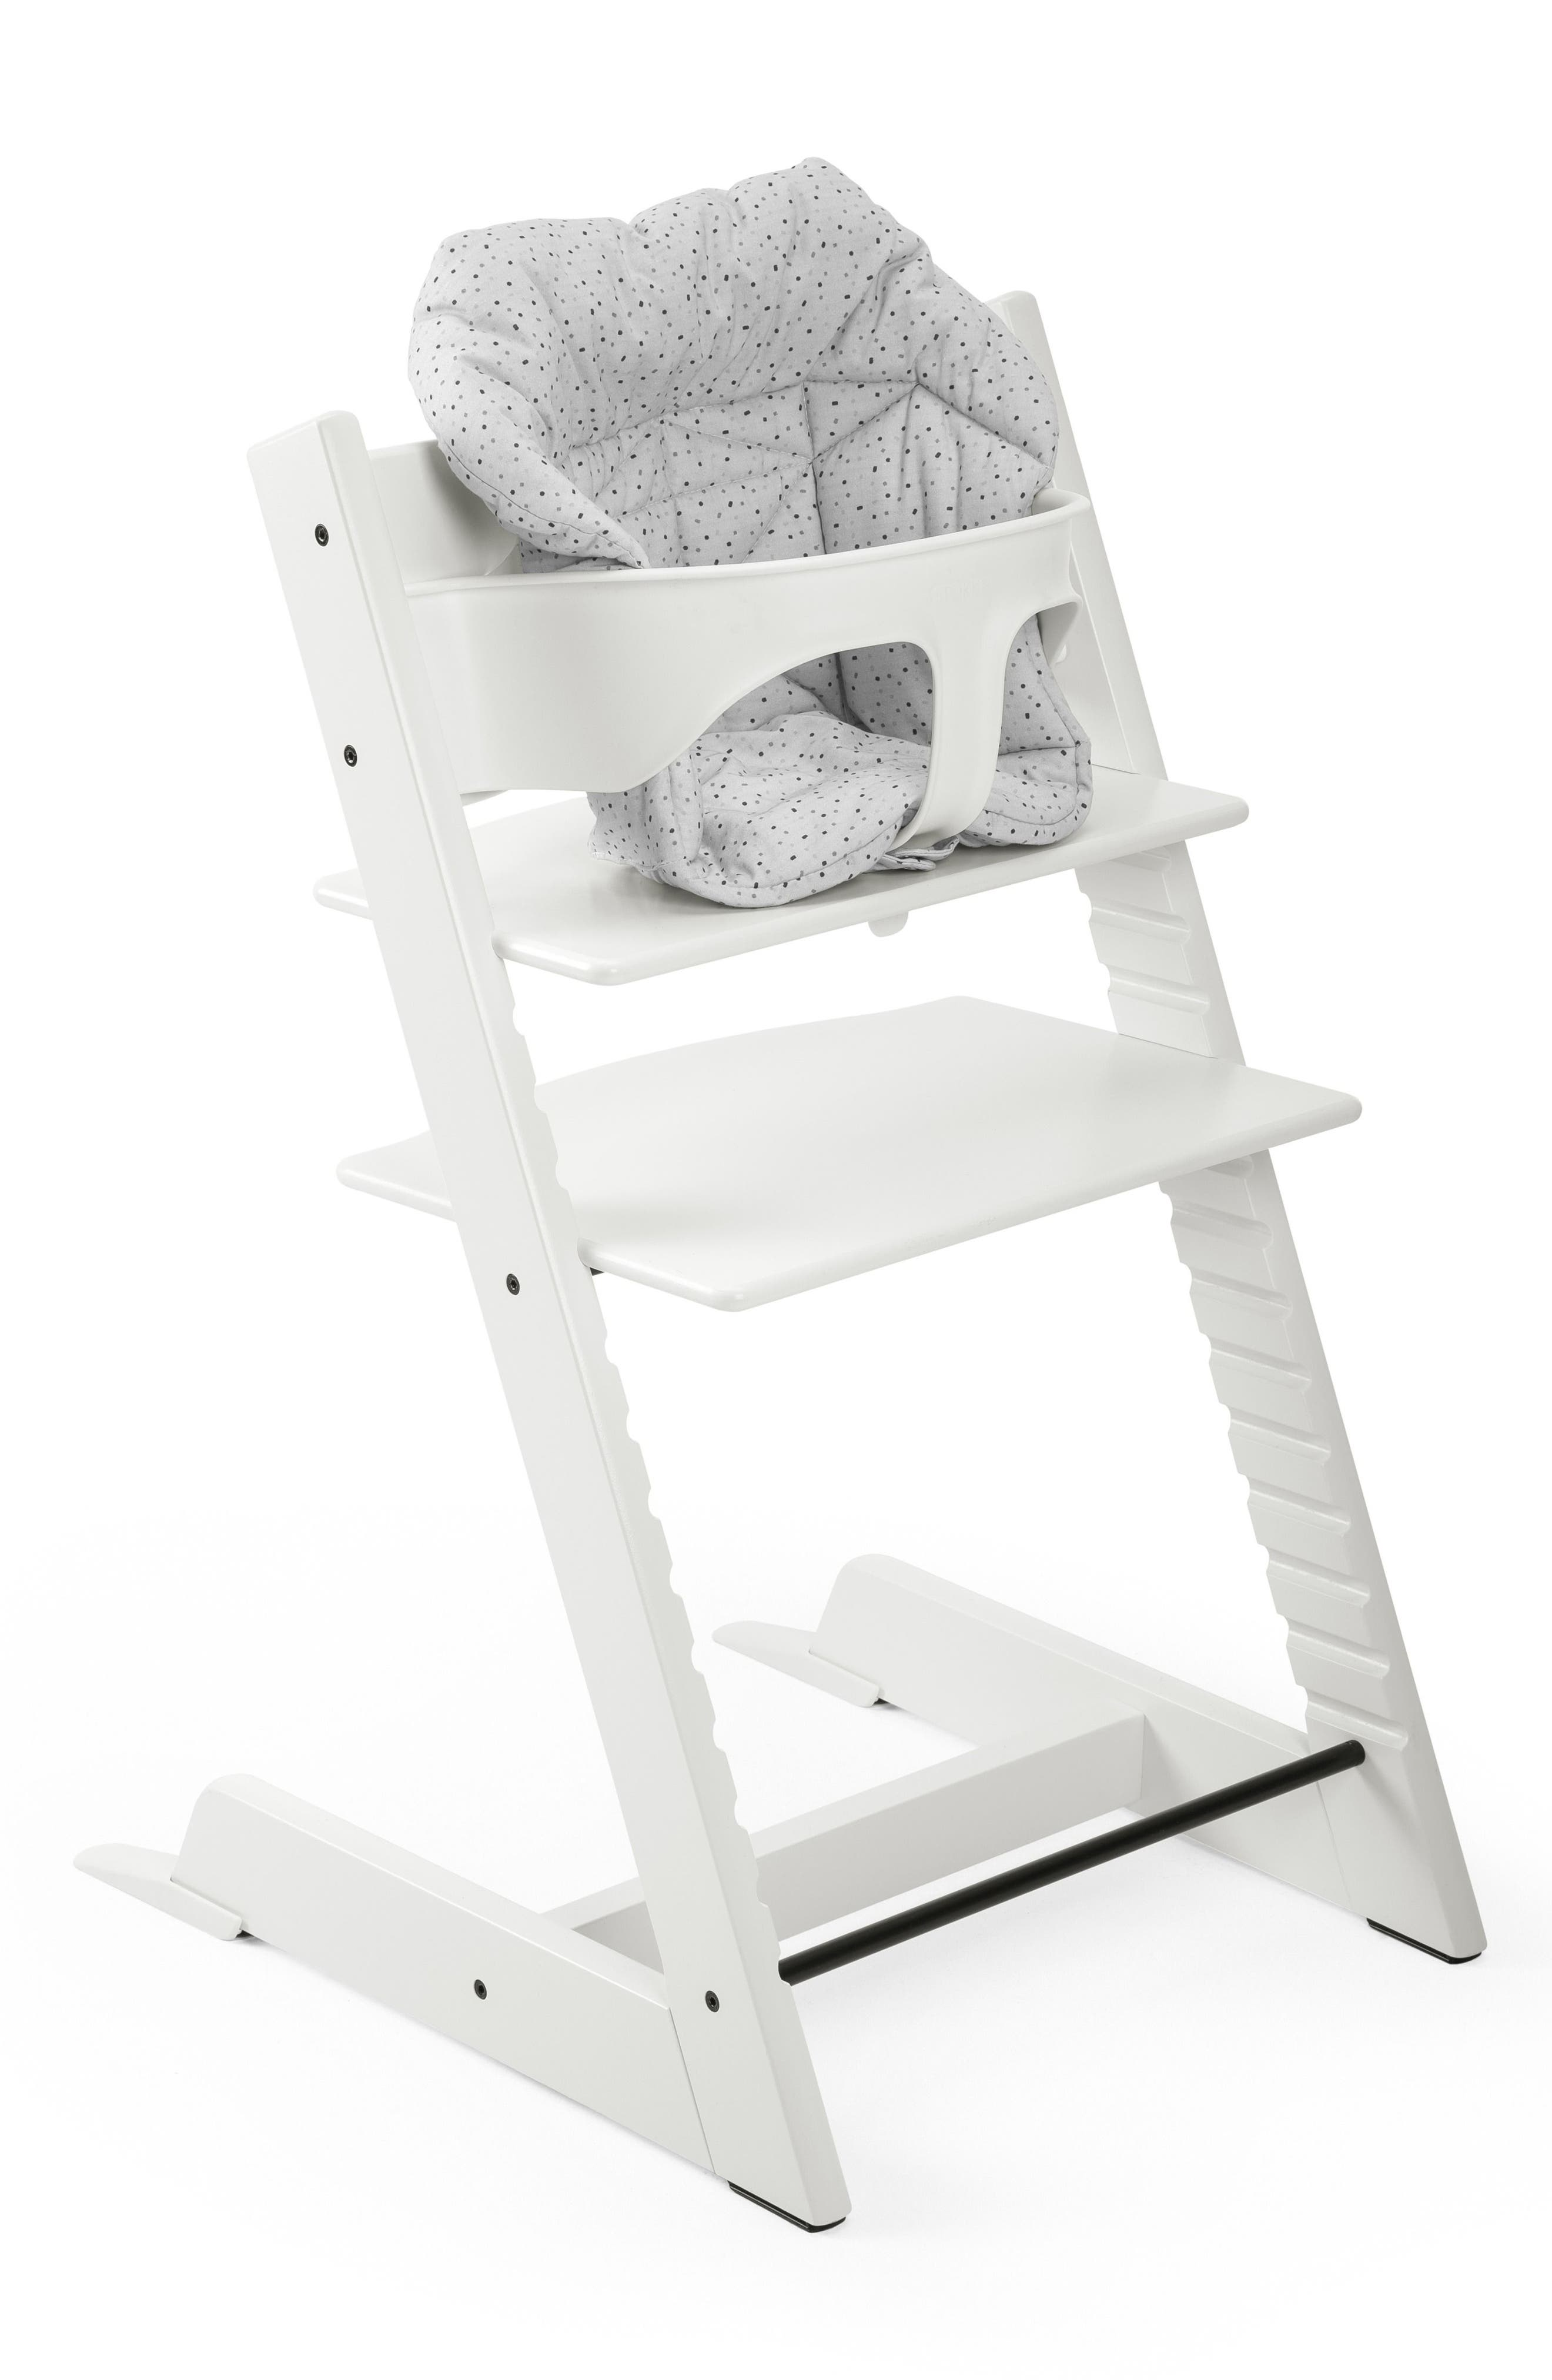 Main Image - Stokke® Seat Cushion for Tripp Trapp® Highchair